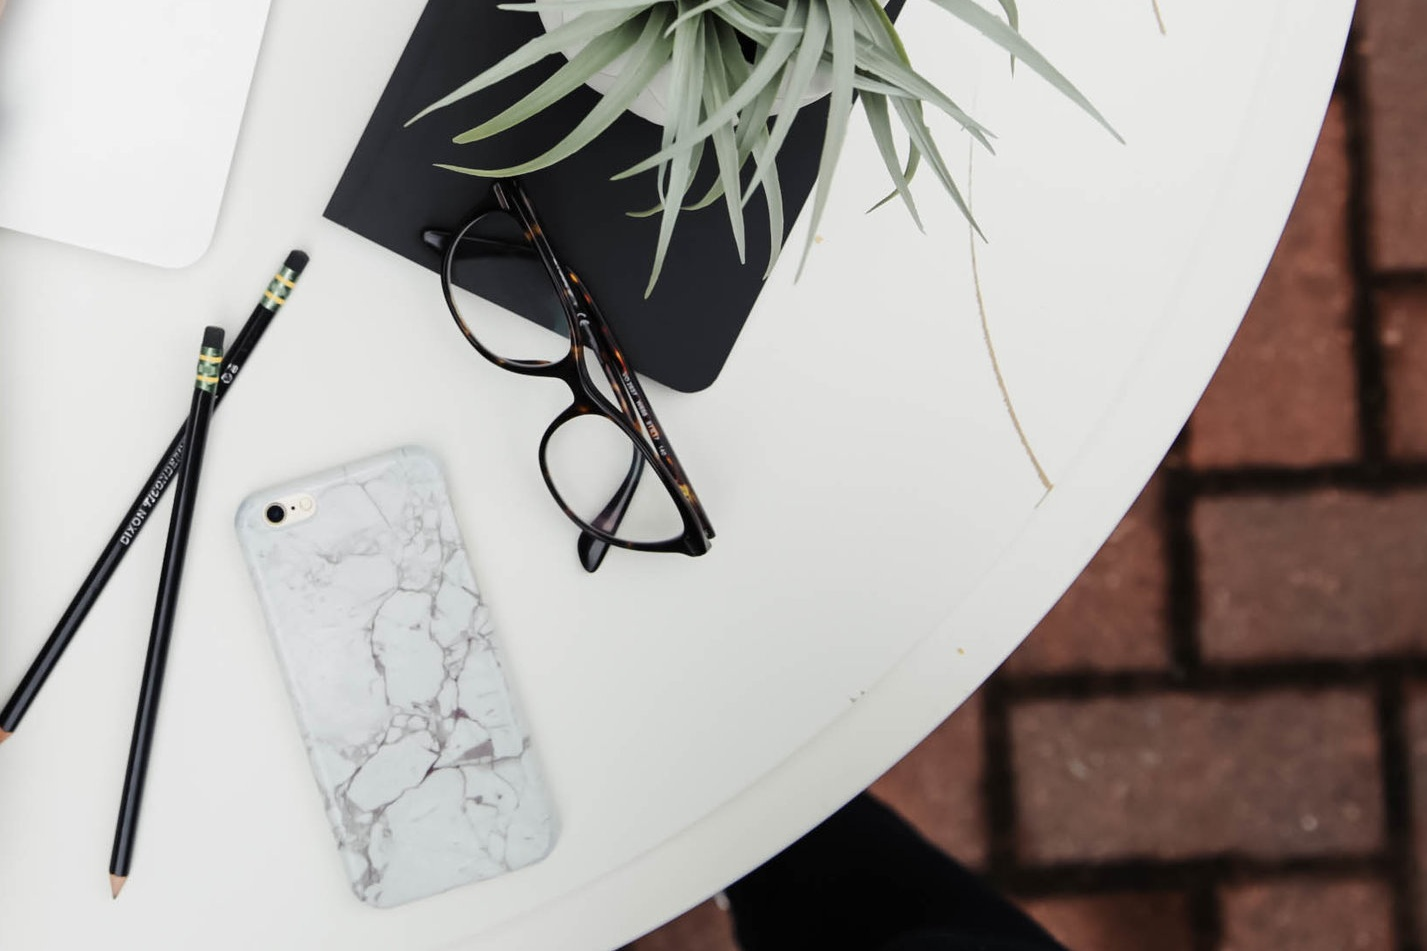 Top Lifestyle Apps for Focus and Productivity | tawnimarie.com | Photo by Corinne Kutz on Unsplash | iphone, glasses, desk, white desk, pencils on desk, iphone on desk, plant on desk